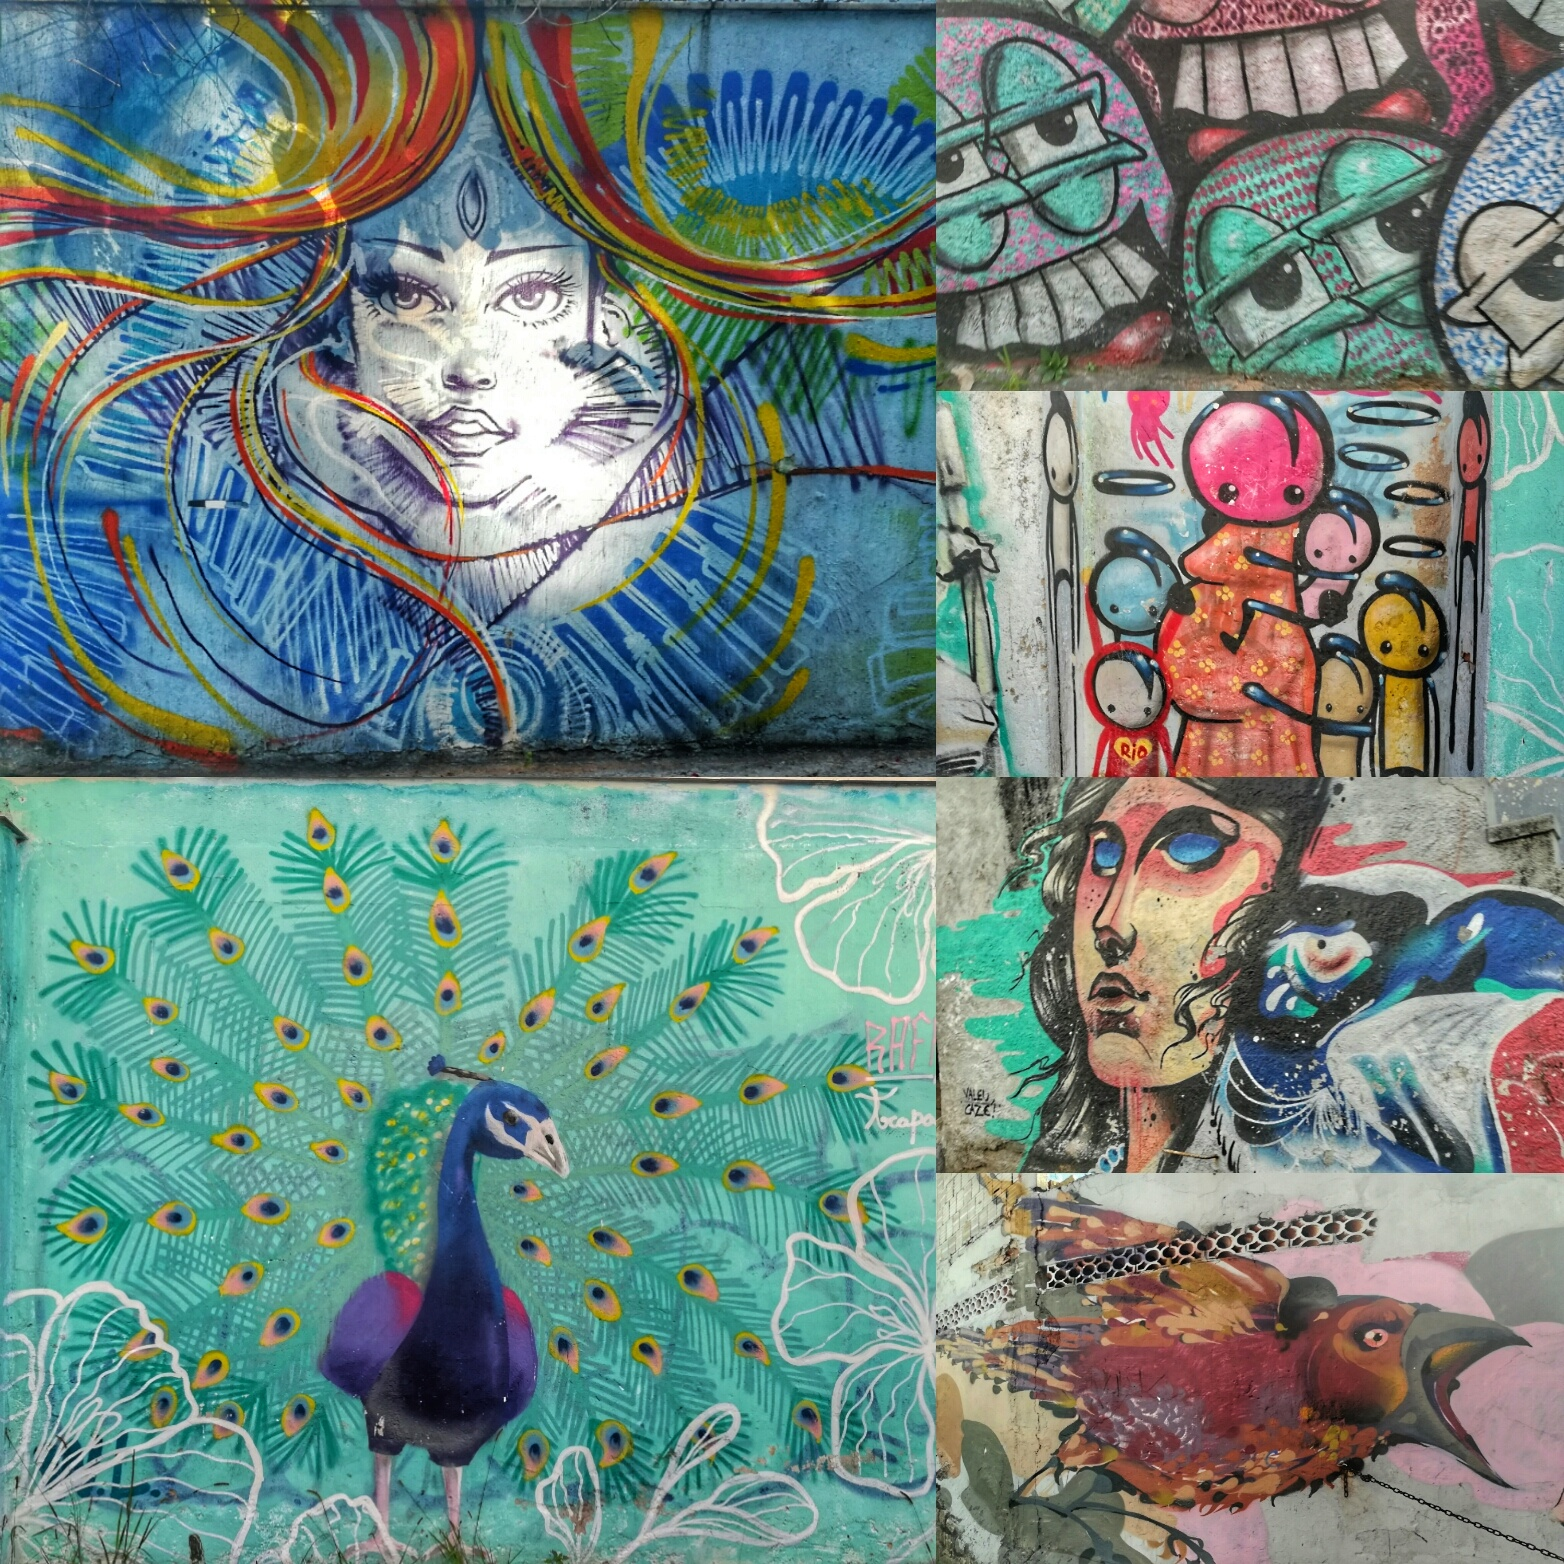 Streets full of artworks like these. Never a boring street!